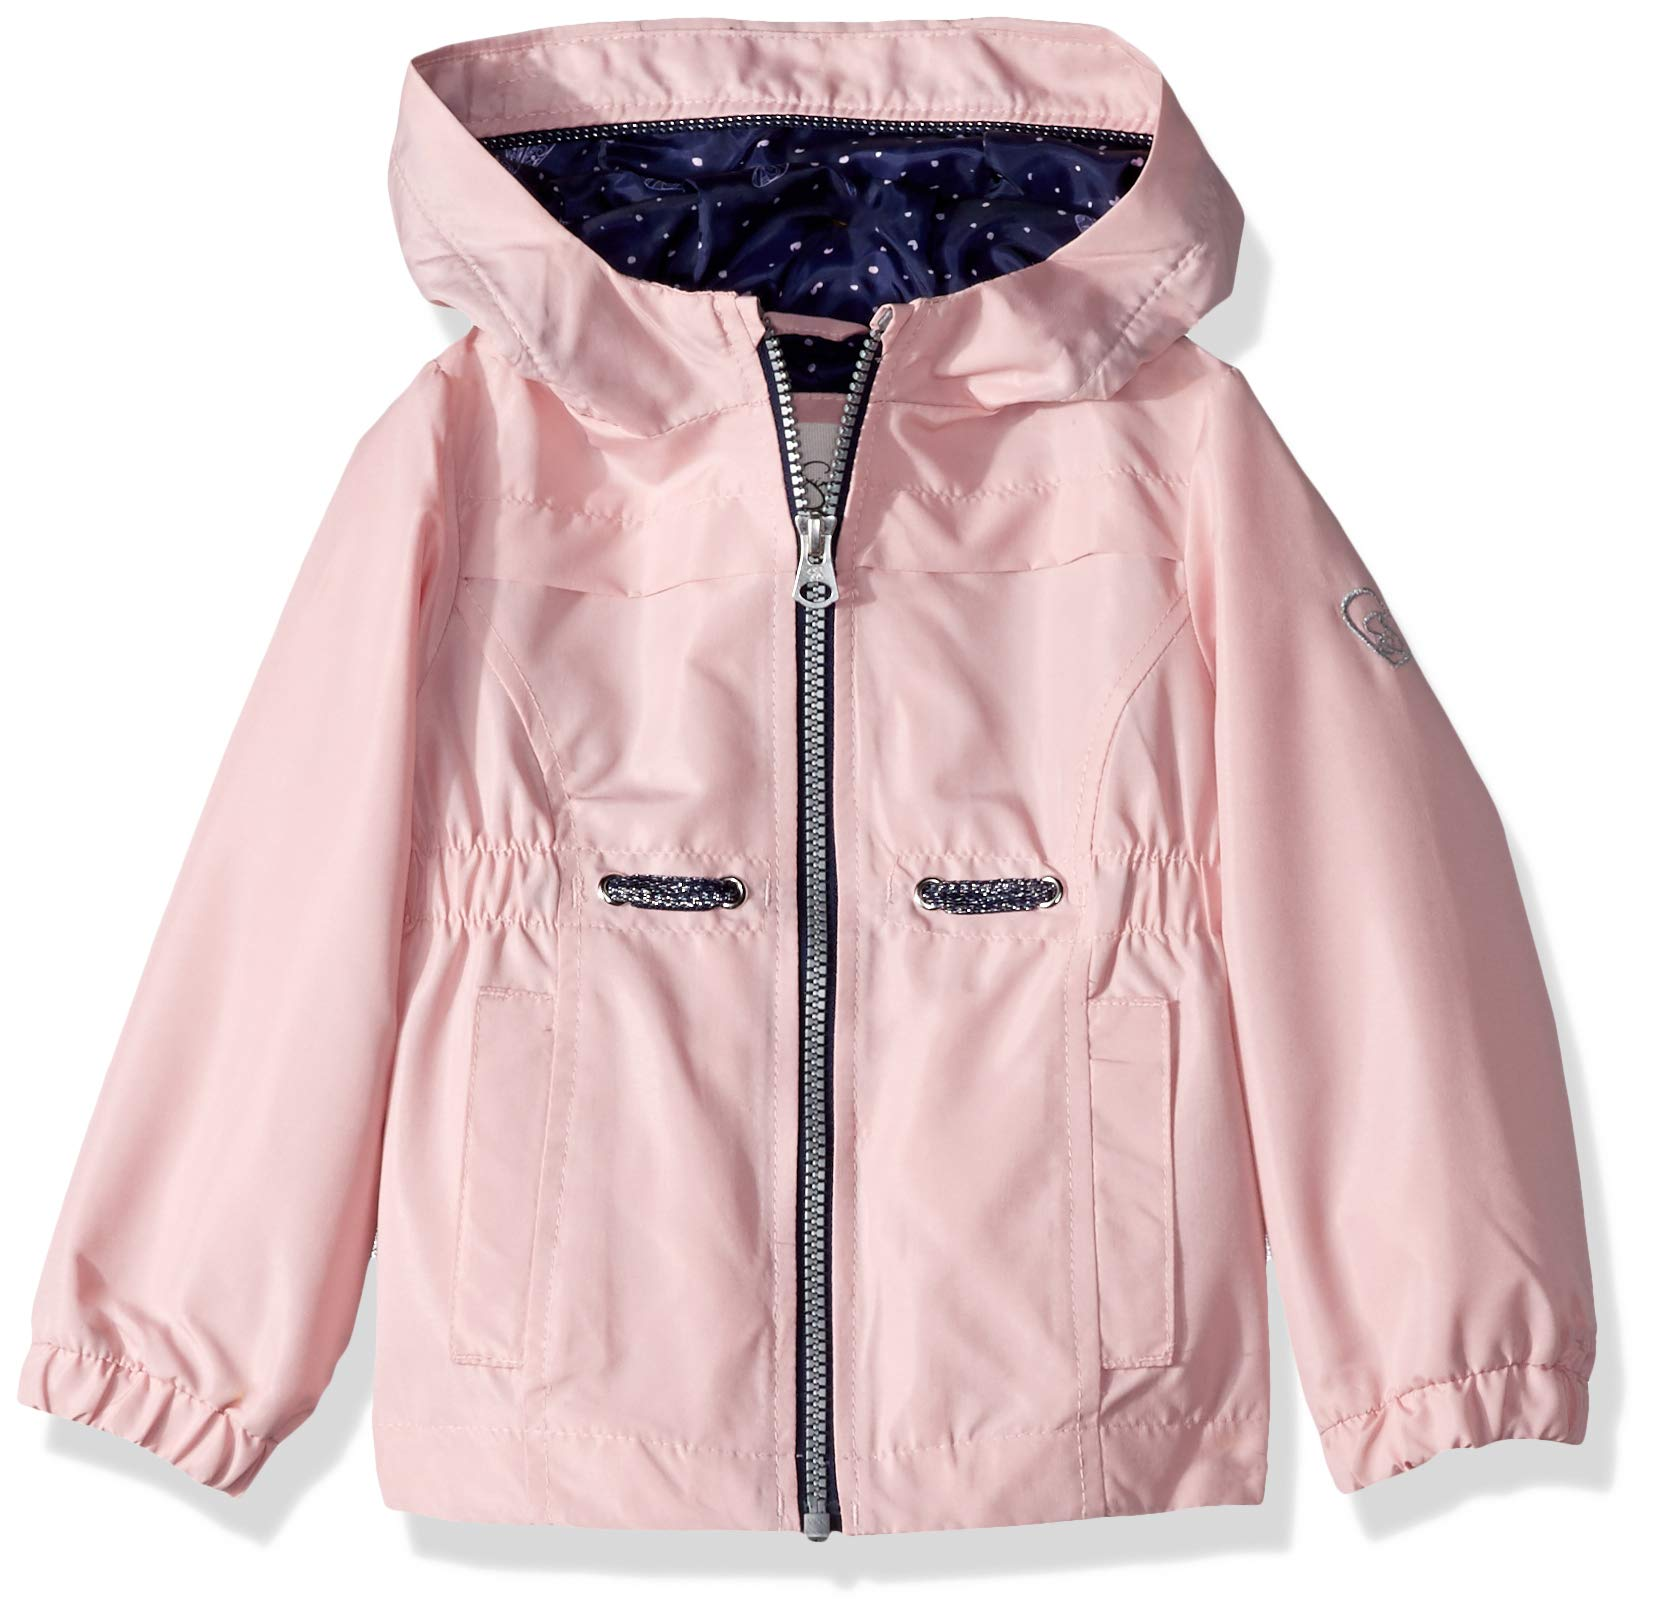 Jessica Simpson Girls' Toddler Lightweight Anorak Jacket with Jersey Lining, Pink mesa 2T